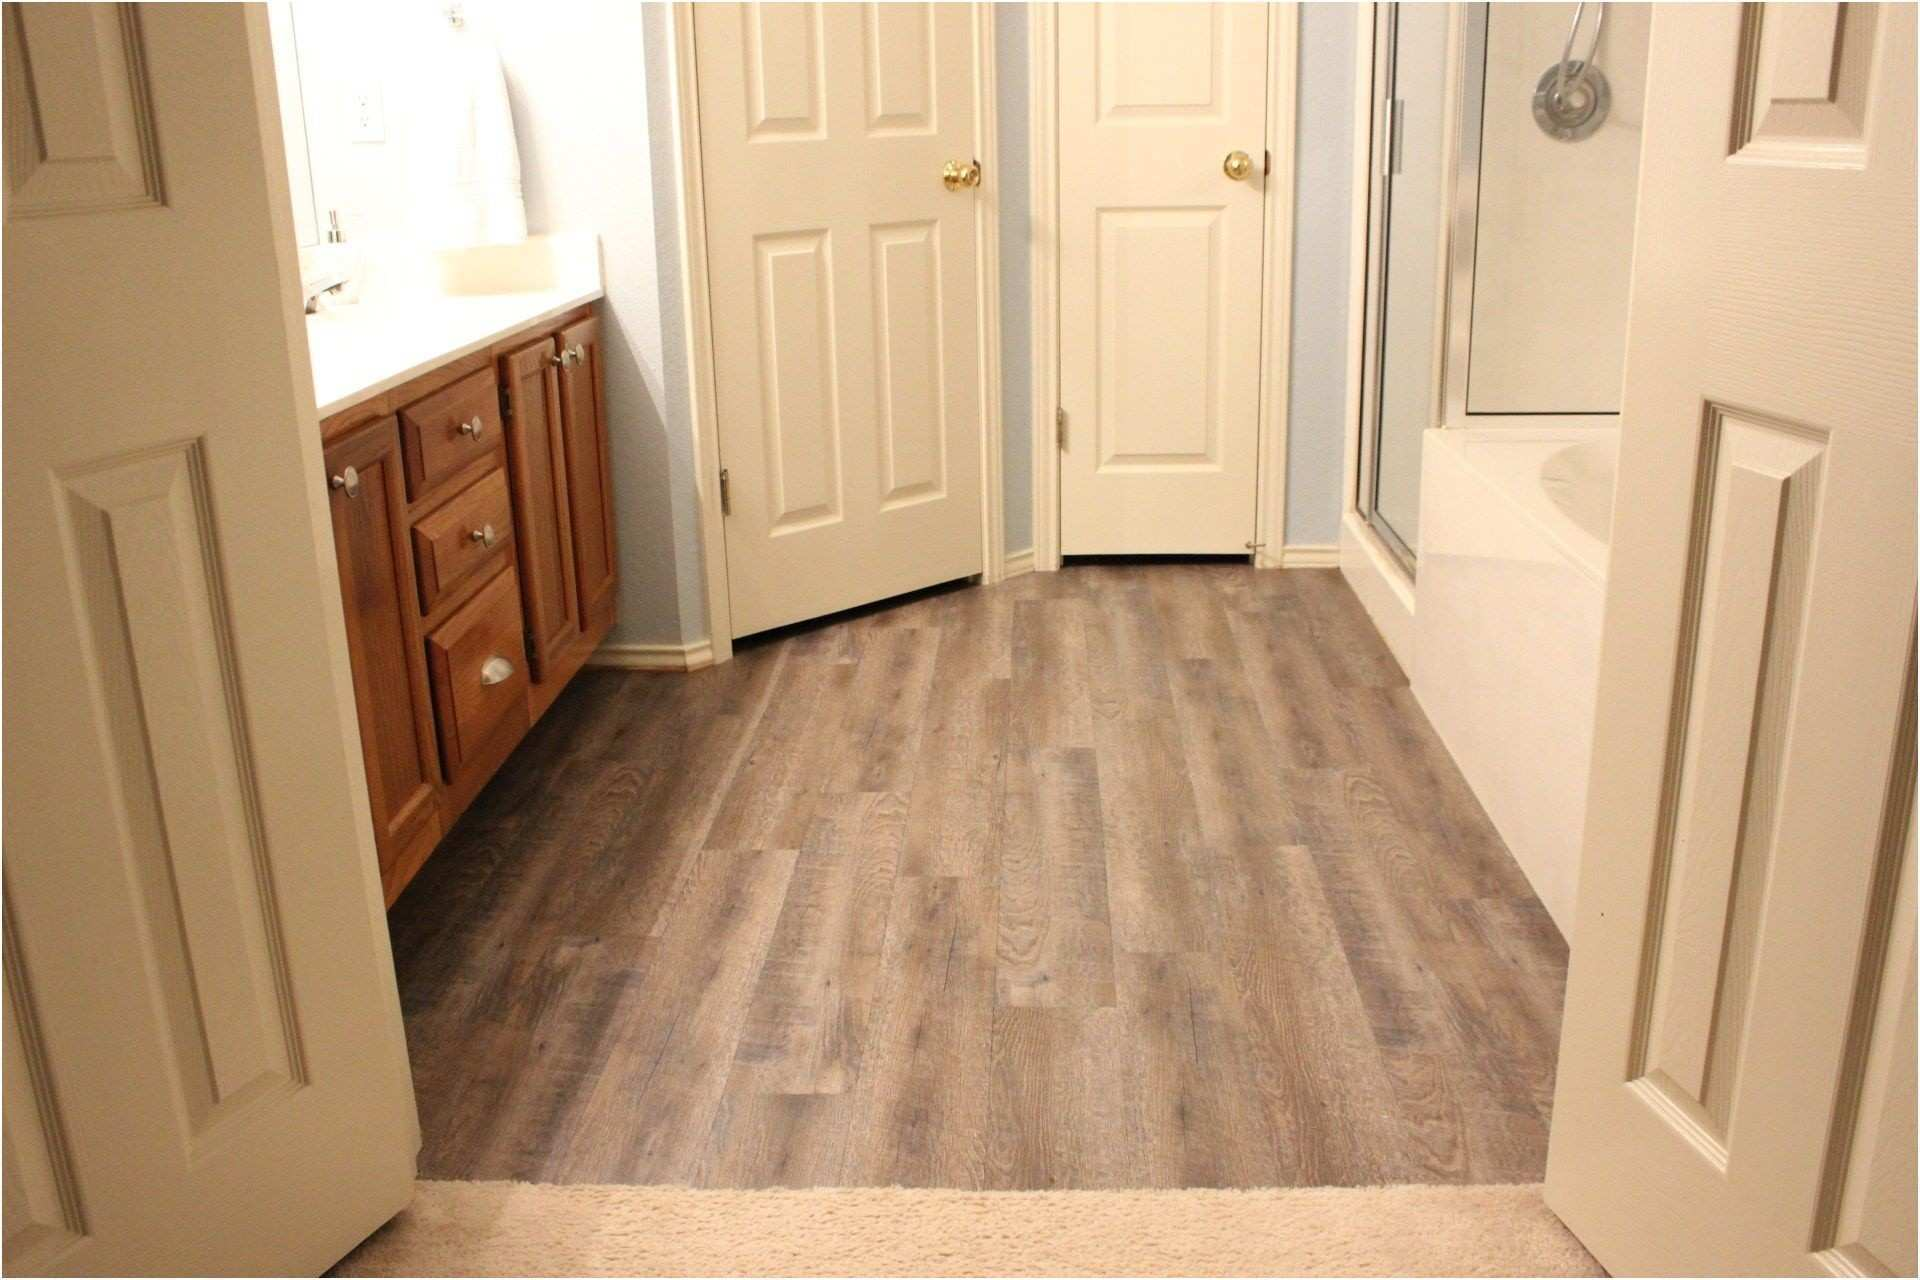 Pictures for Sale Beautiful Vinyl Plan Flooring Elegant Flooring Sale Near Me Stock 0d Grace